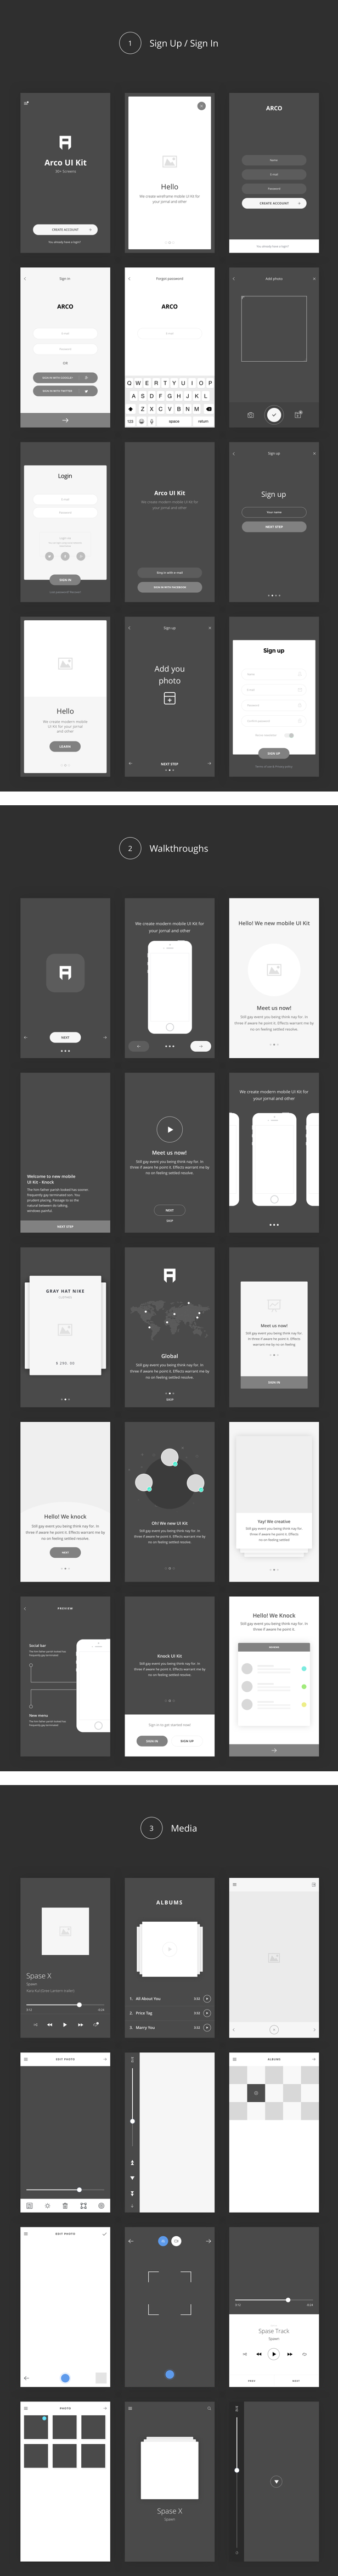 Arco – Wireframe Mobile UI Kit - 2